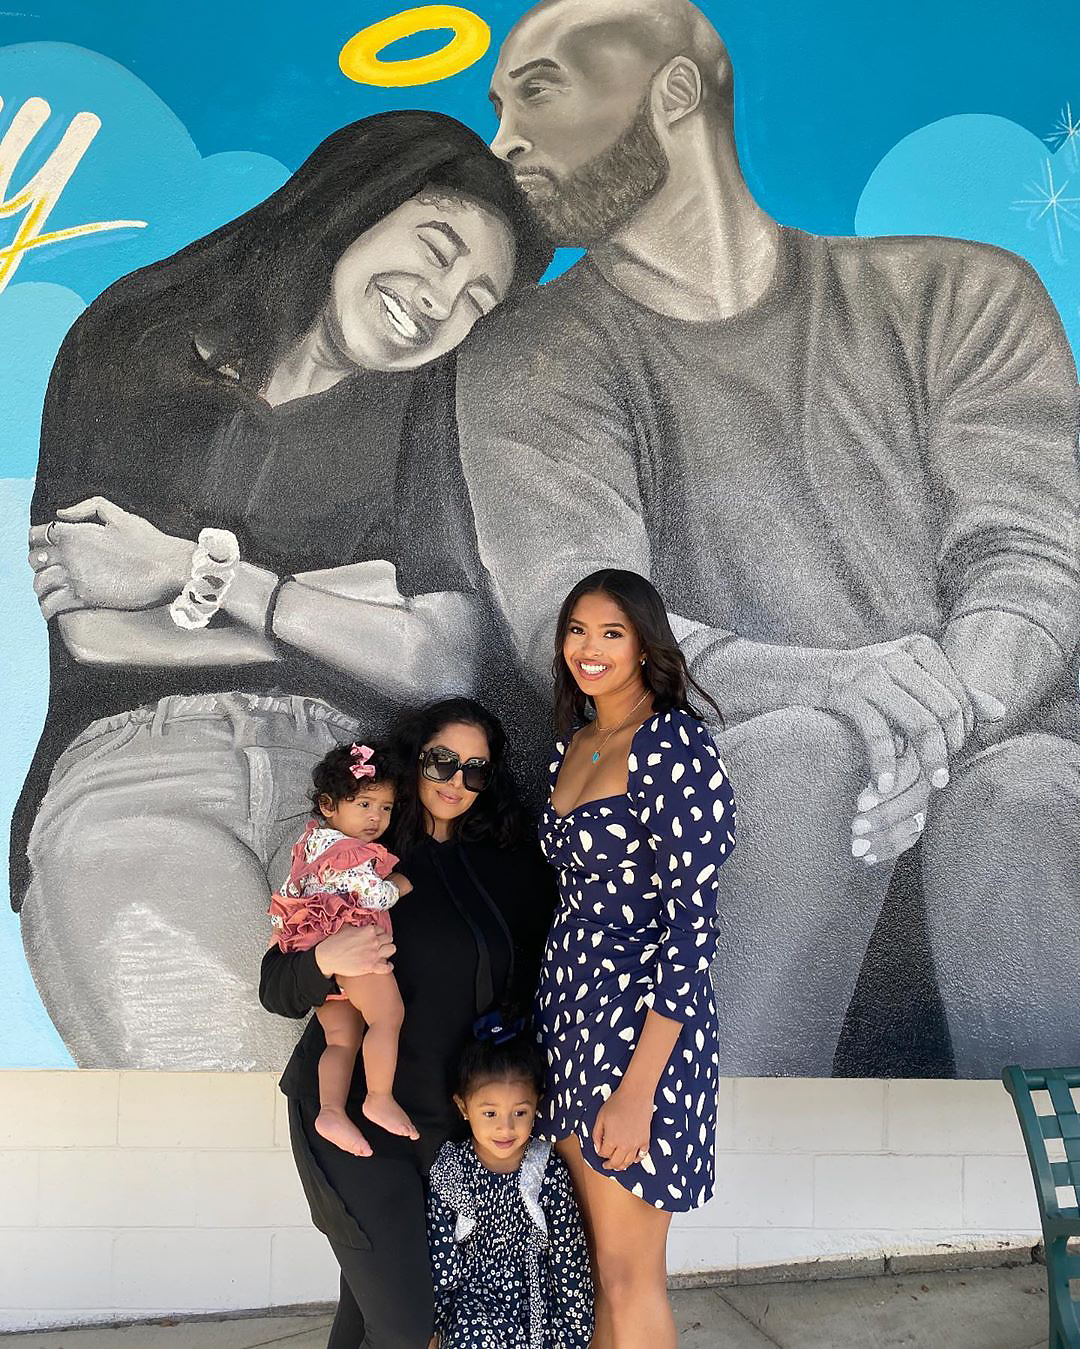 Vanessa Bryant Shares Photos With 3 Daughters in Easter Best Following Kobe Gianna deaths